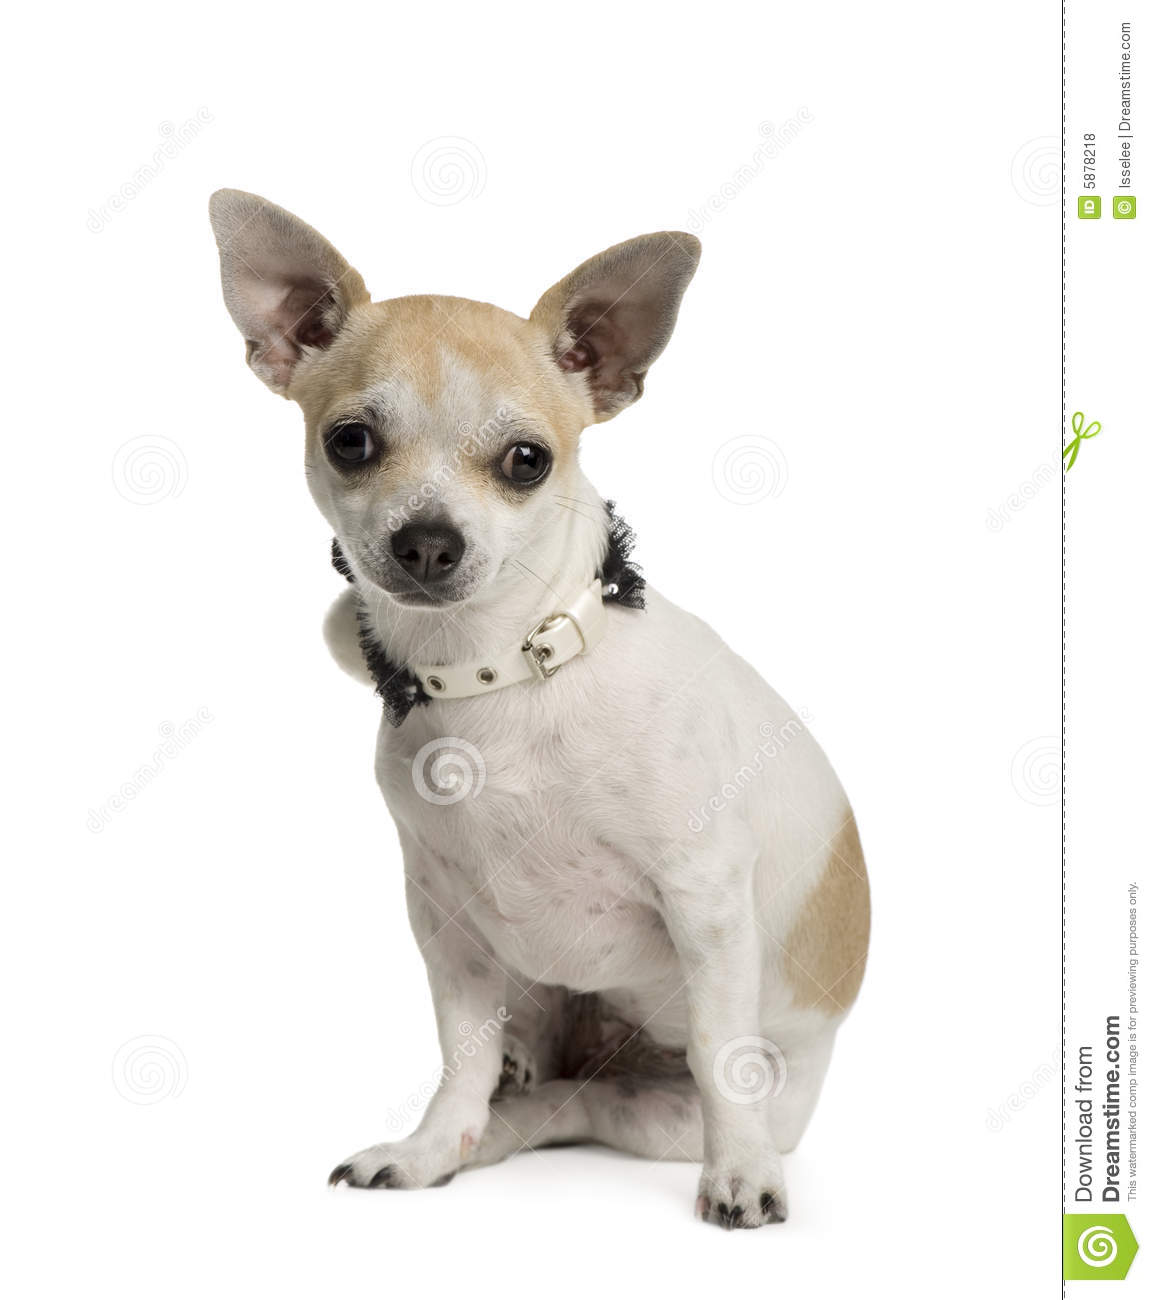 Chihuahua (6 months) in front of a white background.